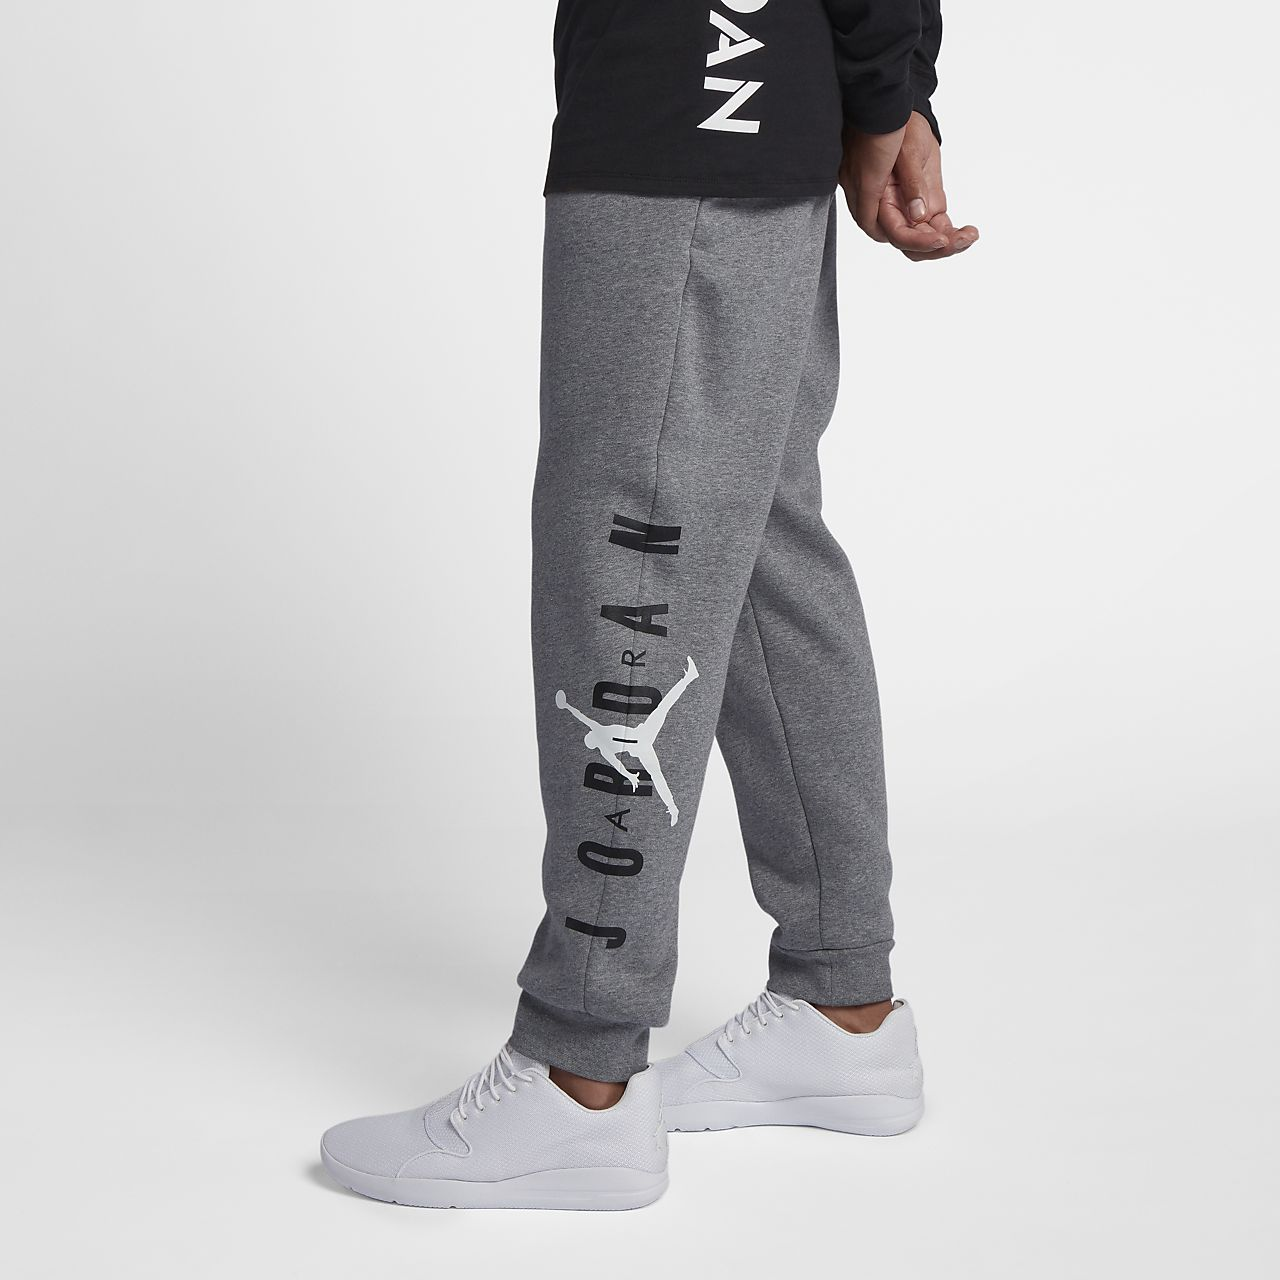 fc6abee92401f3 Jordan Jumpman Air Men s Fleece Pants. Nike.com